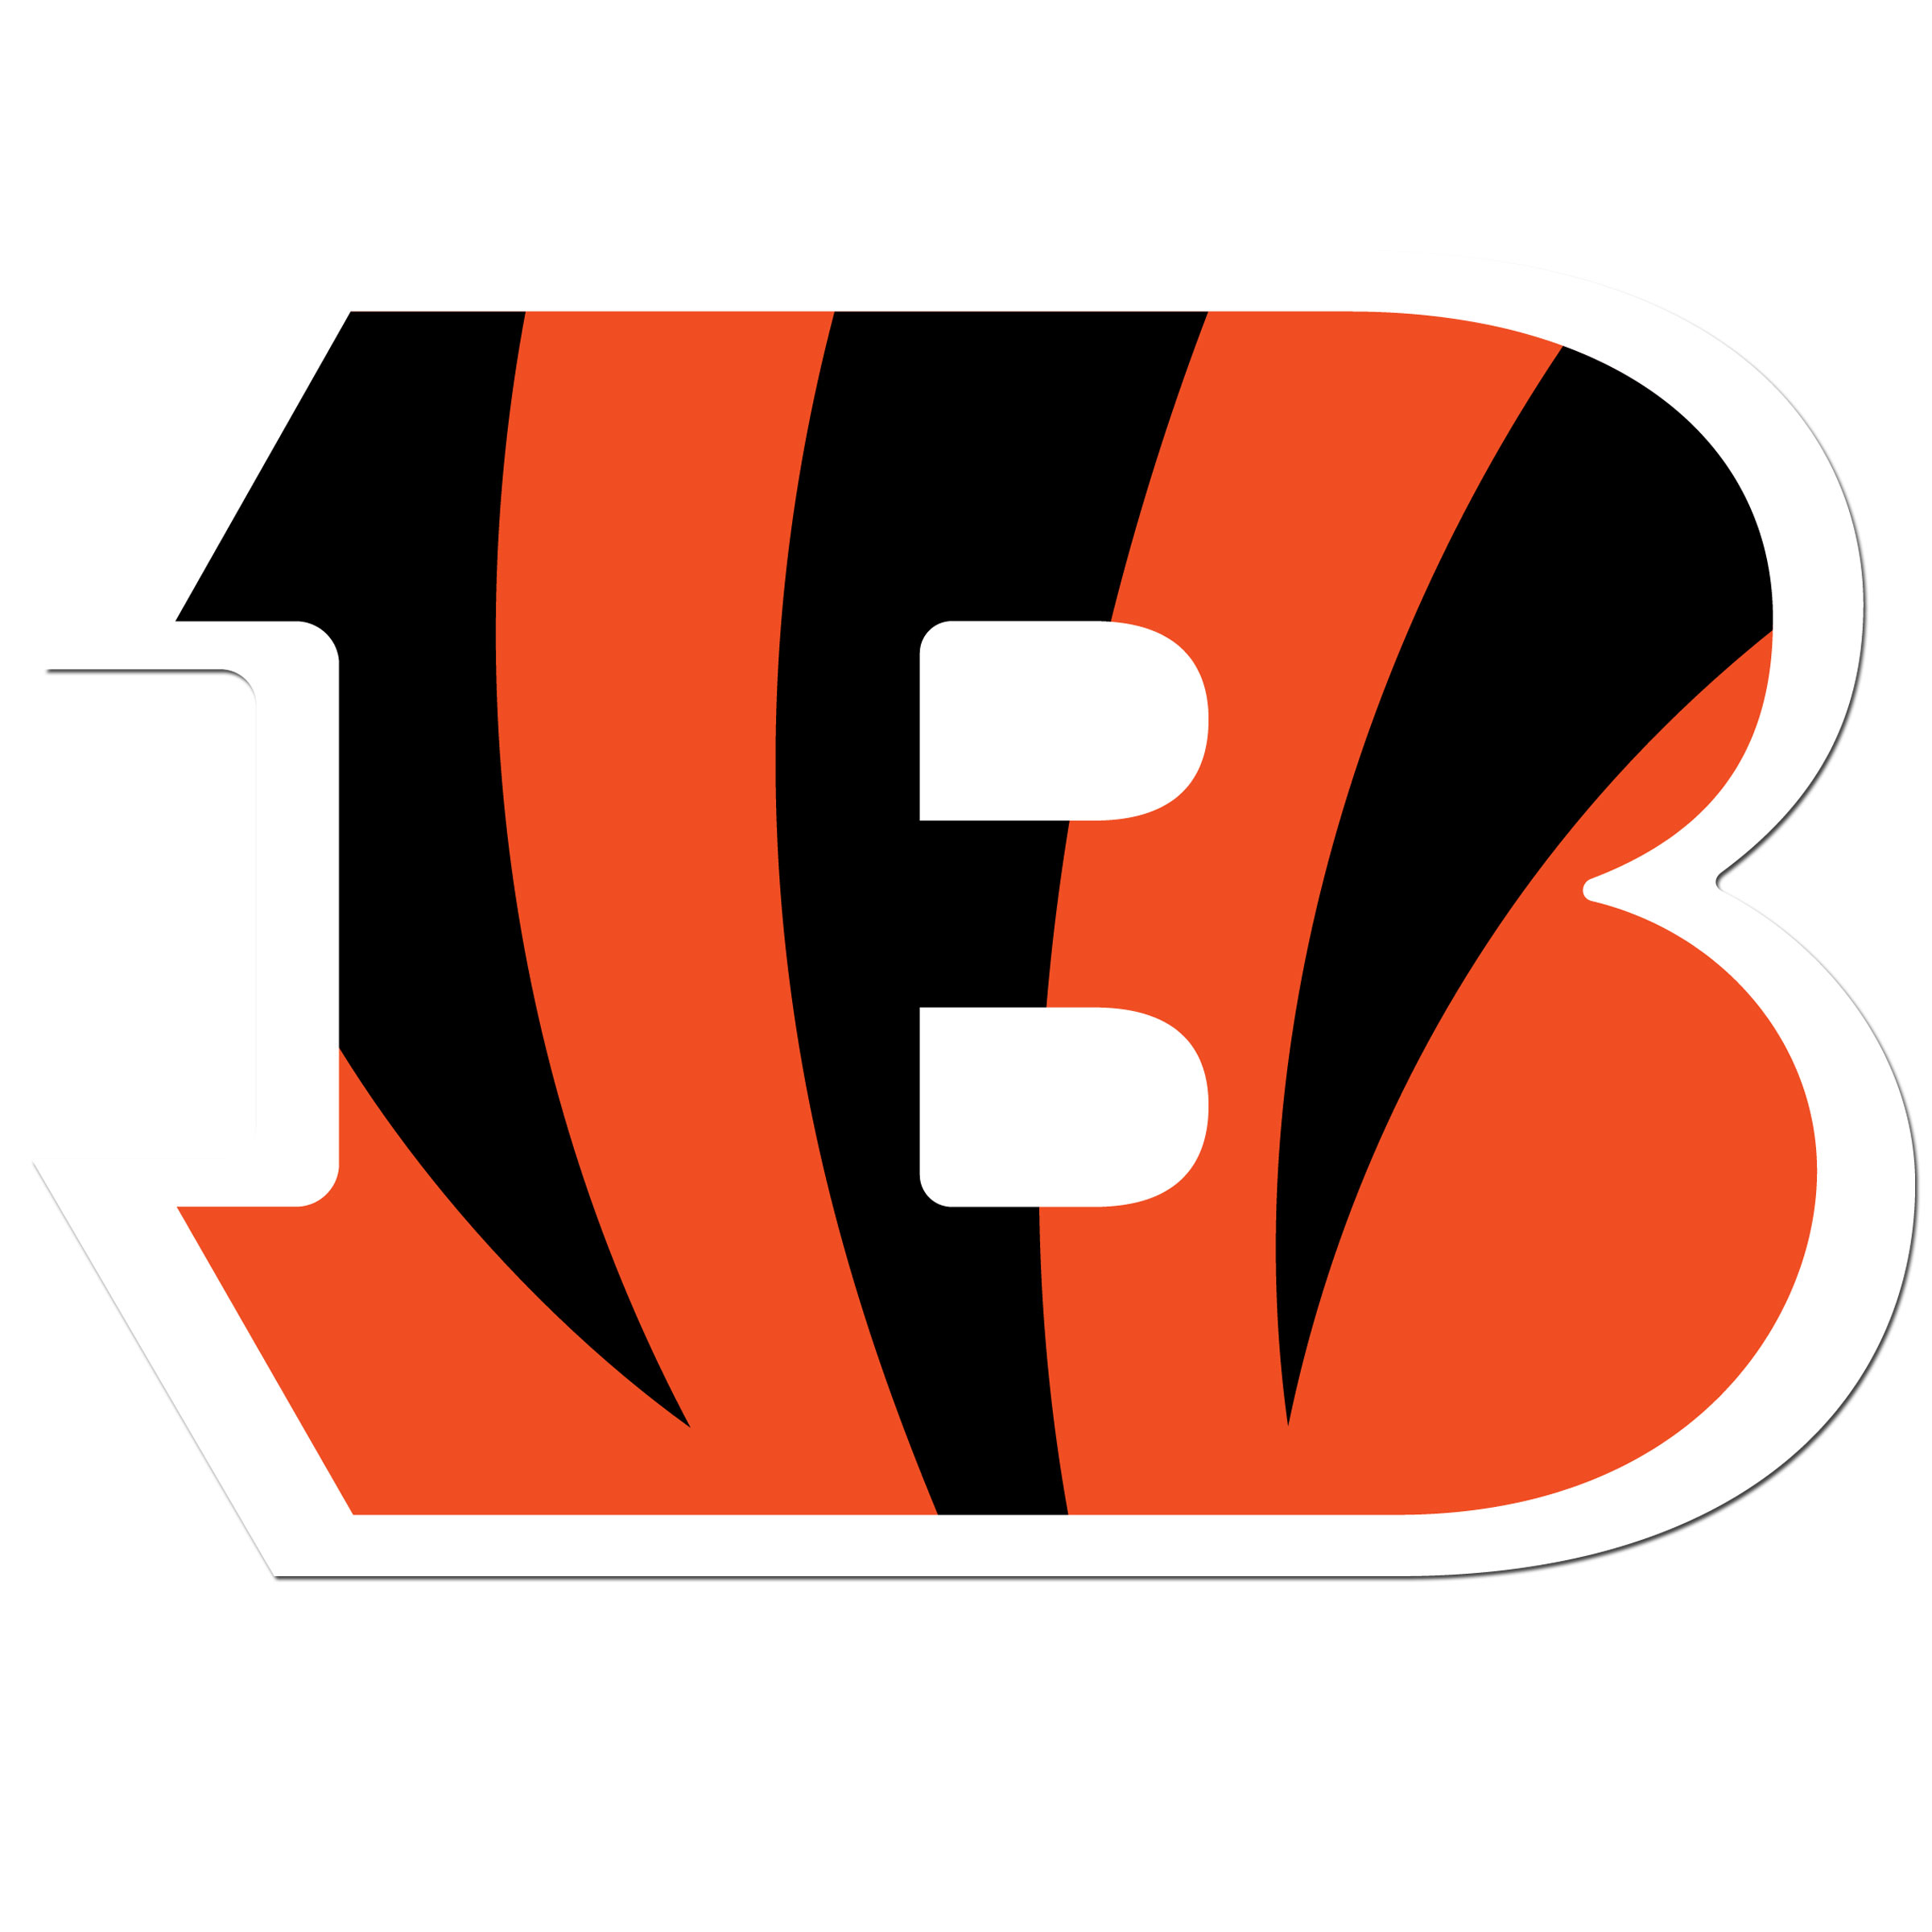 Cincinnati Bengals 8 inch Auto Decal - This bold, 8 inch Cincinnati Bengals is a great way to show off your team pride! The low tack vinyl decal is easily positioned and adjusted to make sure you get that logo in just the right spot on your vehicle. Designed to be used on the outside of the window.